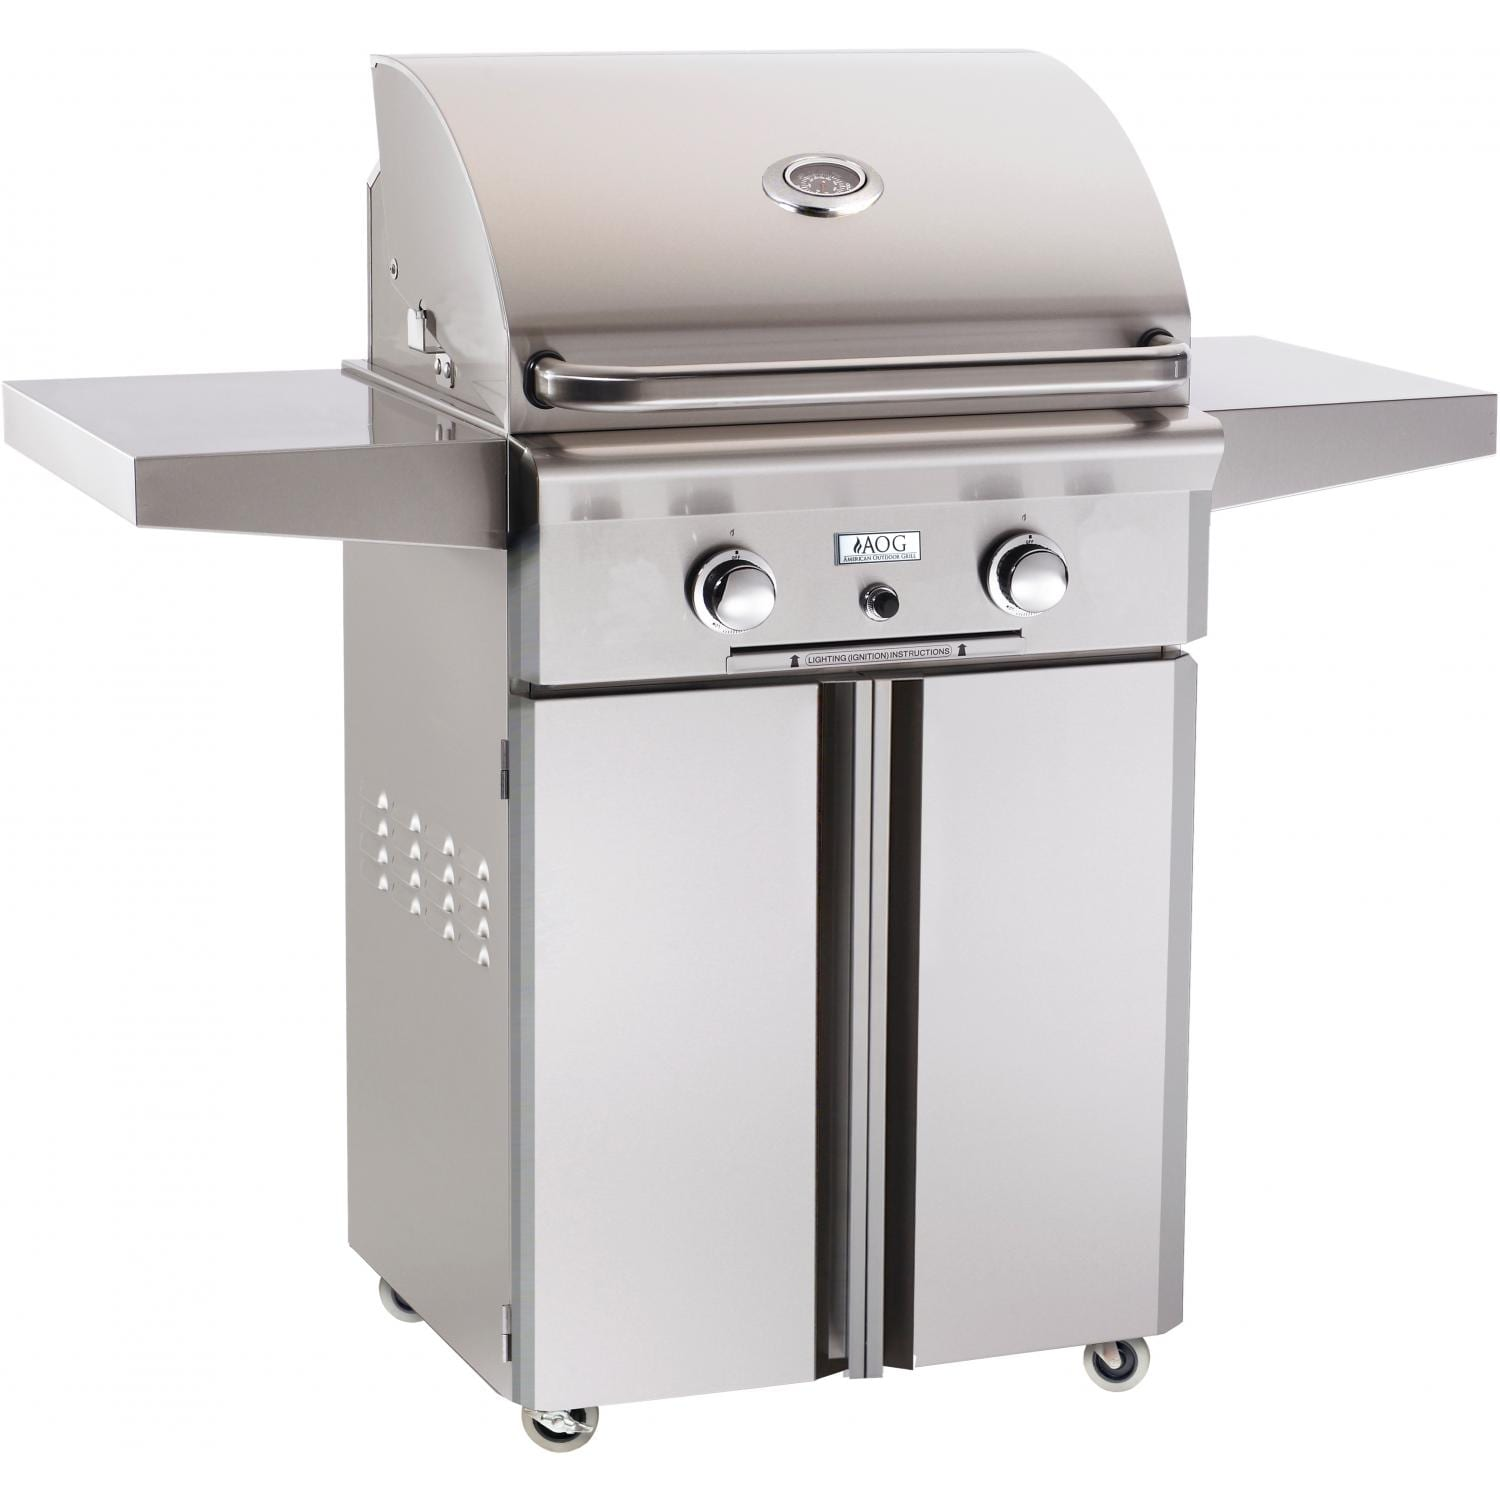 american outdoor grill 24 inch propane gas grill on cart bbq guys. Black Bedroom Furniture Sets. Home Design Ideas